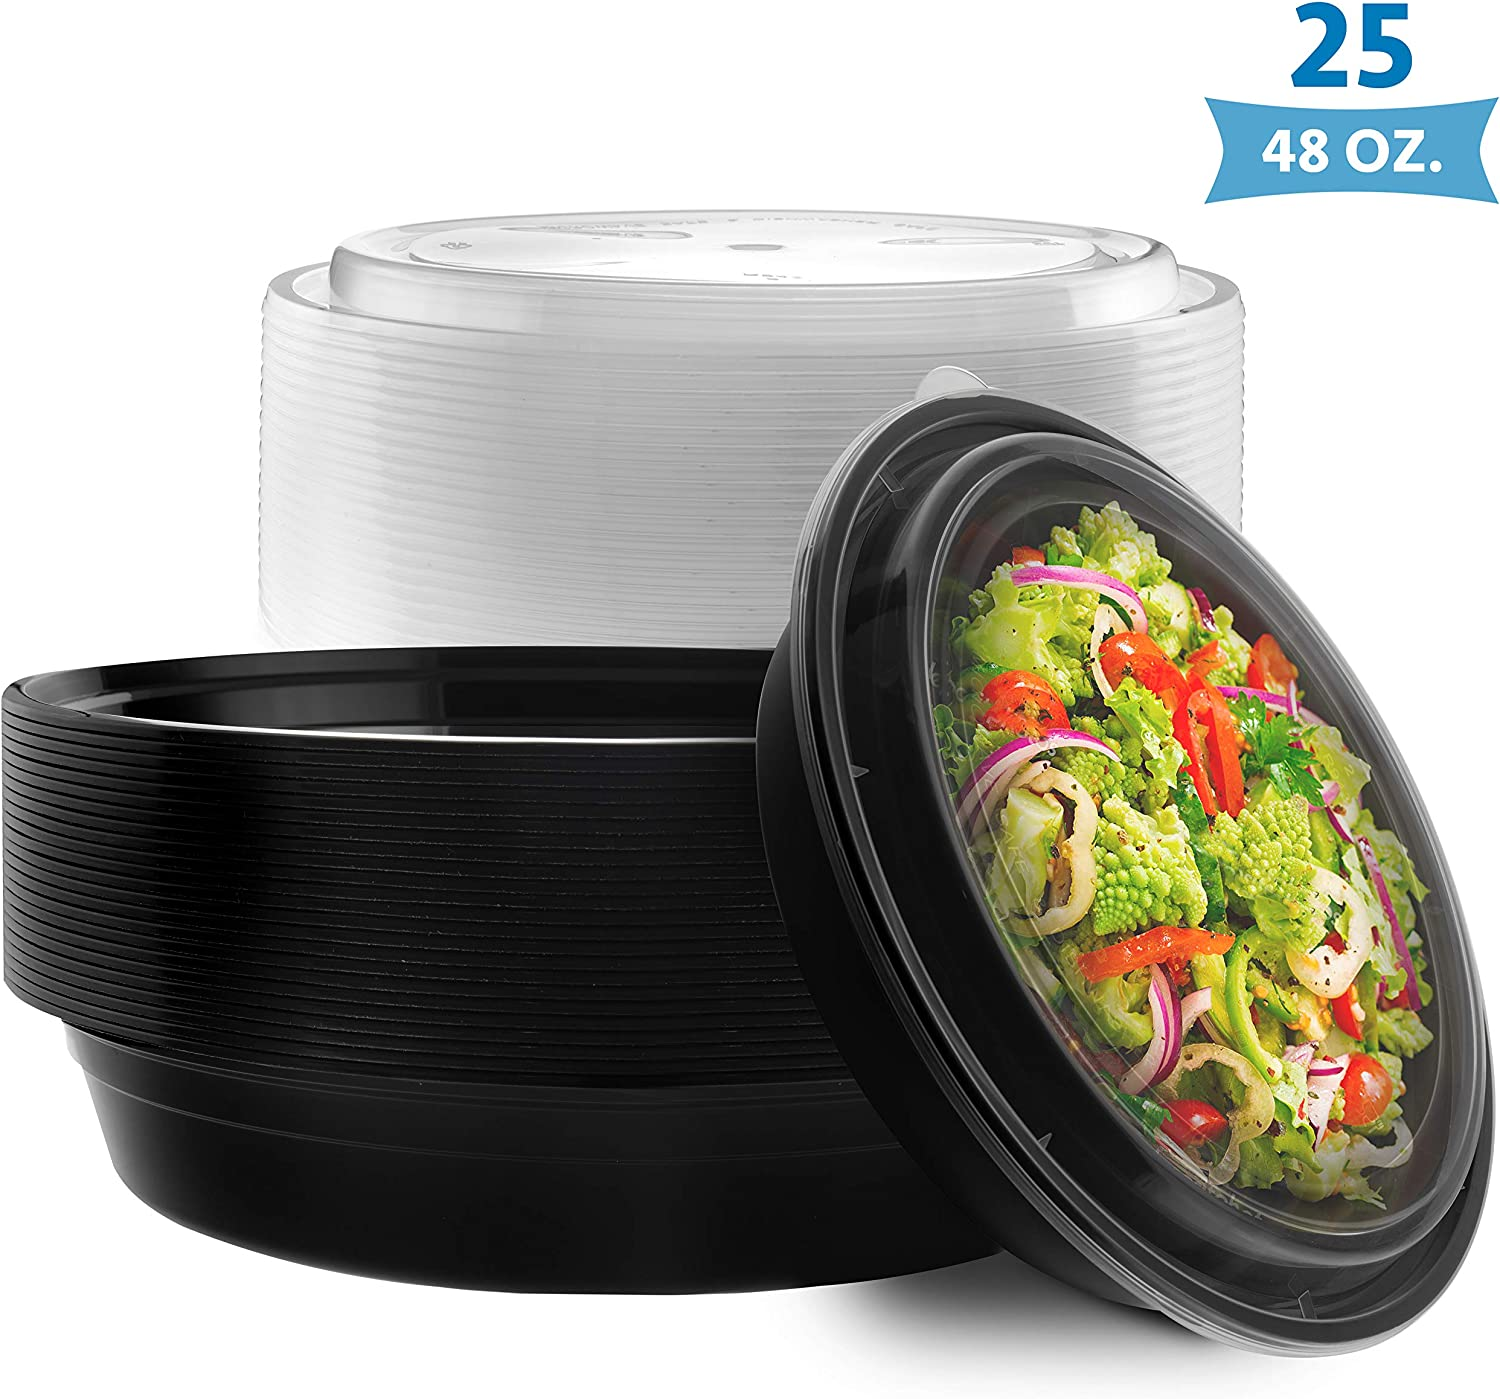 NYHI Round Meal Prep Food Containers | One Compartment BPA-Free Plastic Food Storage Portion Control Dishes With Lids | Reusable Bento Lunch Box | Microwave Dishwasher Freezer Safe | 9 Inch, 25 Pack